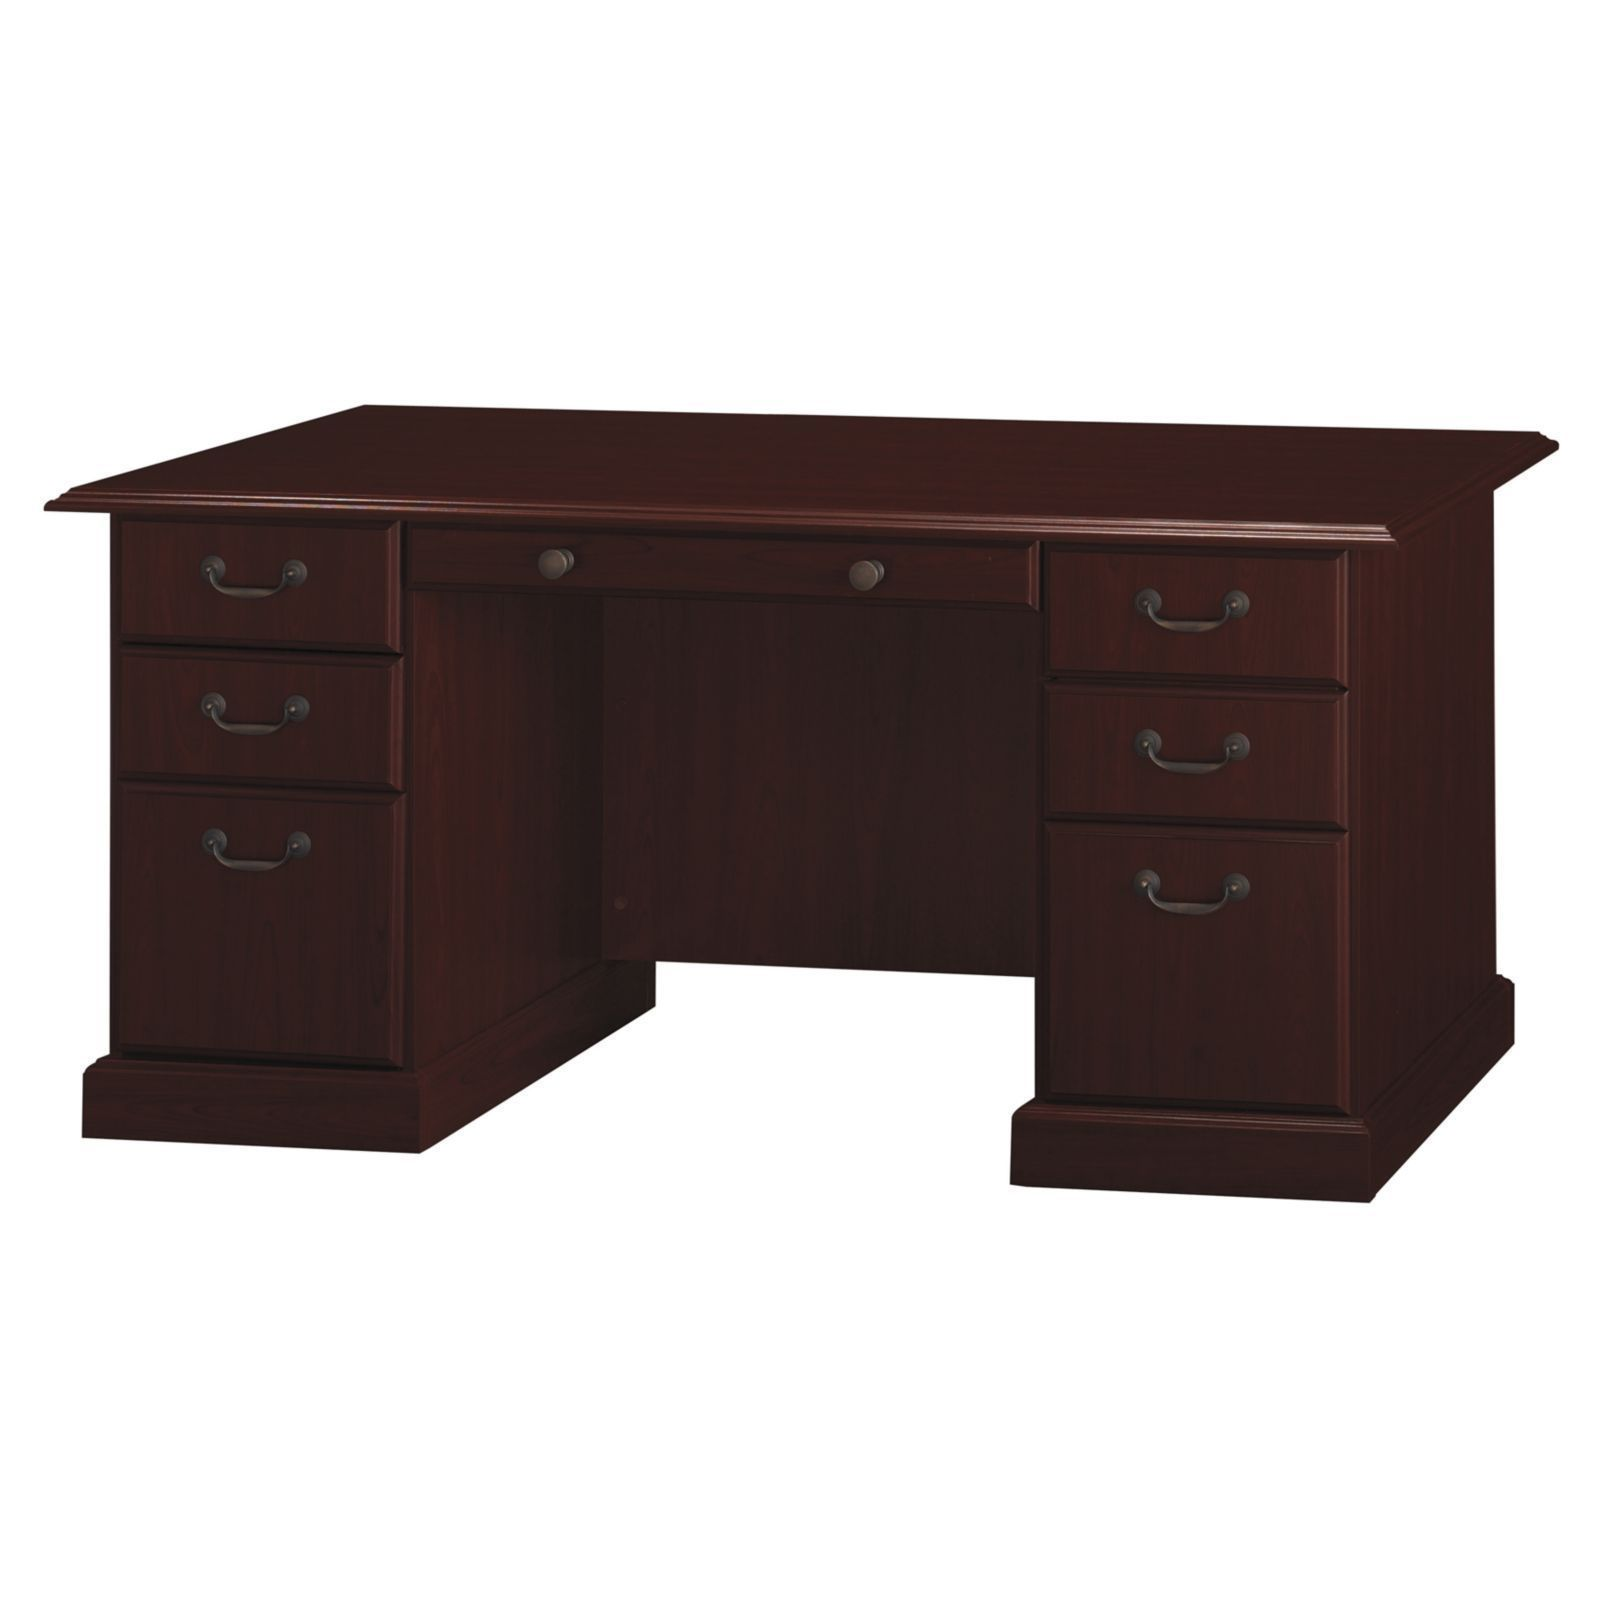 Kathy Ireland Office Bennington Manager S Desk In Harvest Cherry Free Shipping Today 17439021